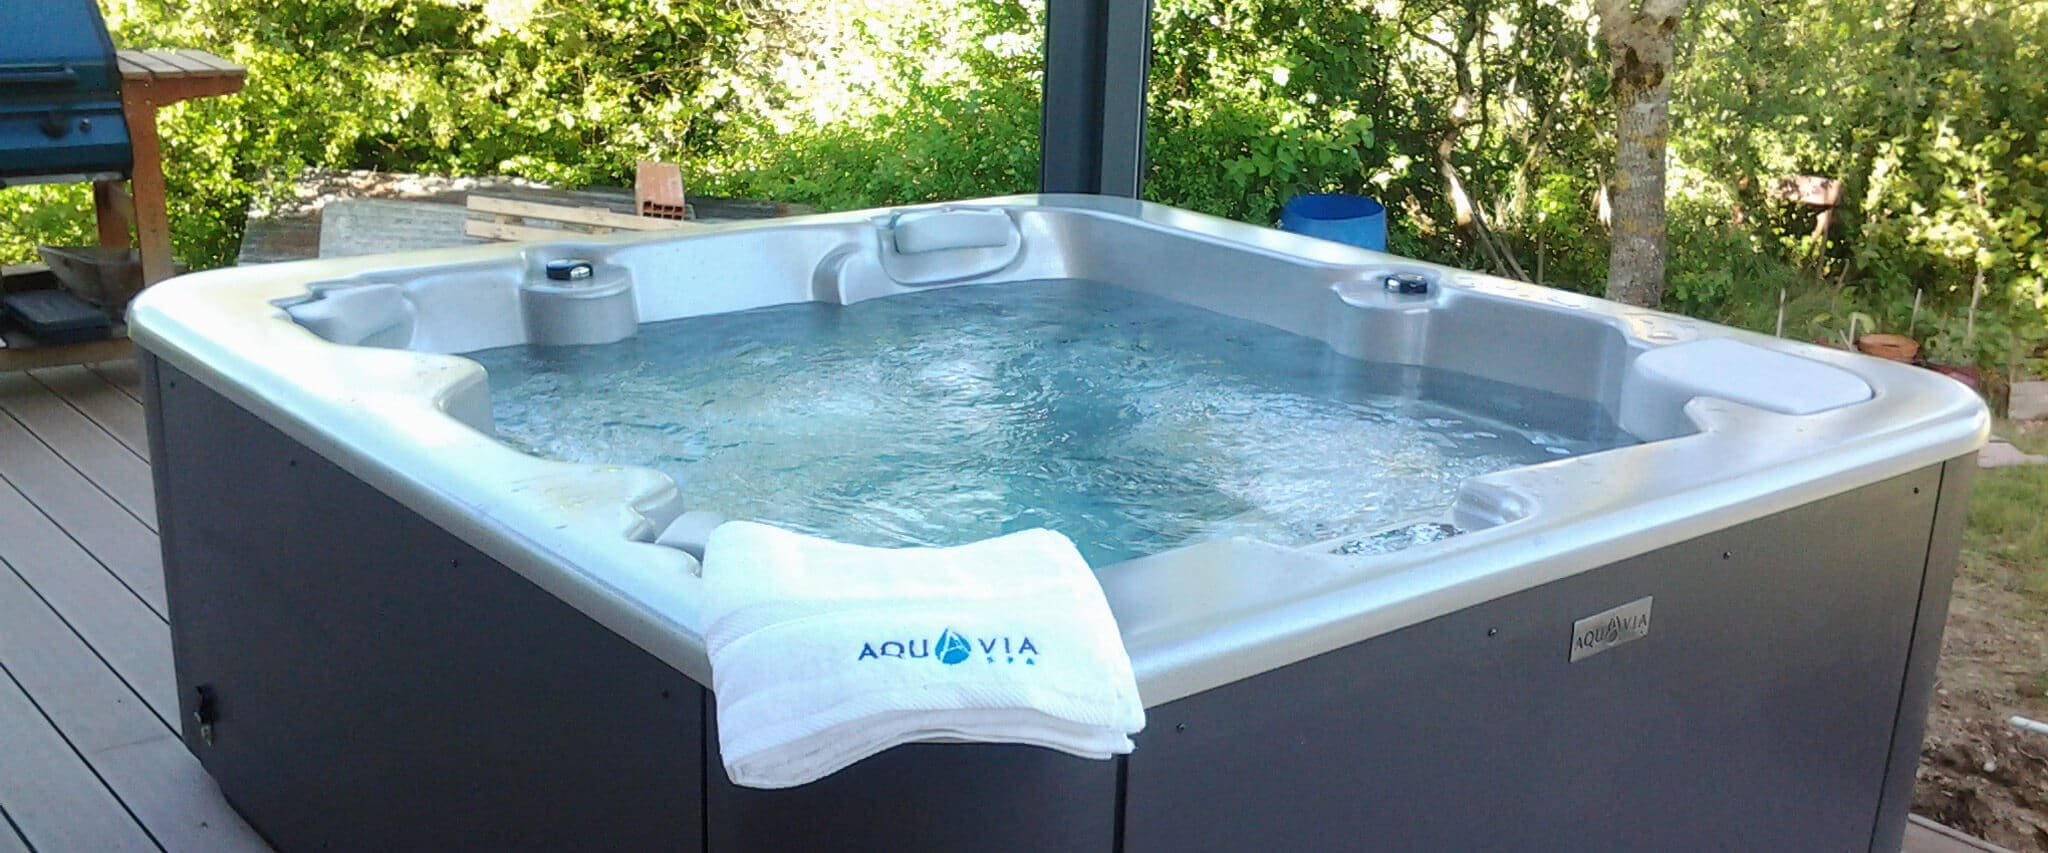 Buy Hot Tub >> Buy The Easy Access Hot Tub Aqualife 5 Aquavia Spa